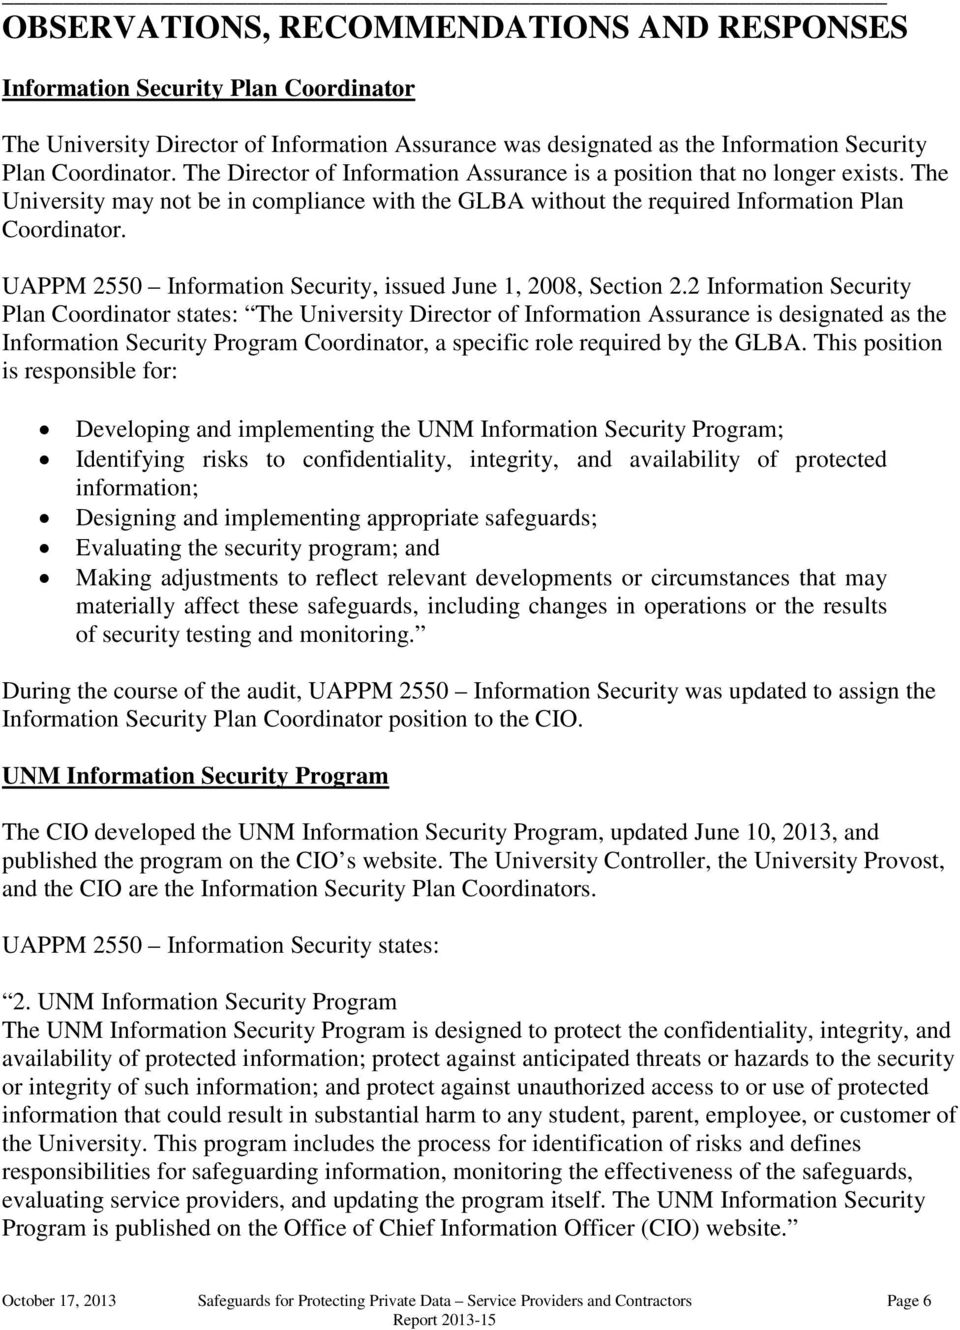 UAPPM 2550 Information Security, issued June 1, 2008, Section 2.